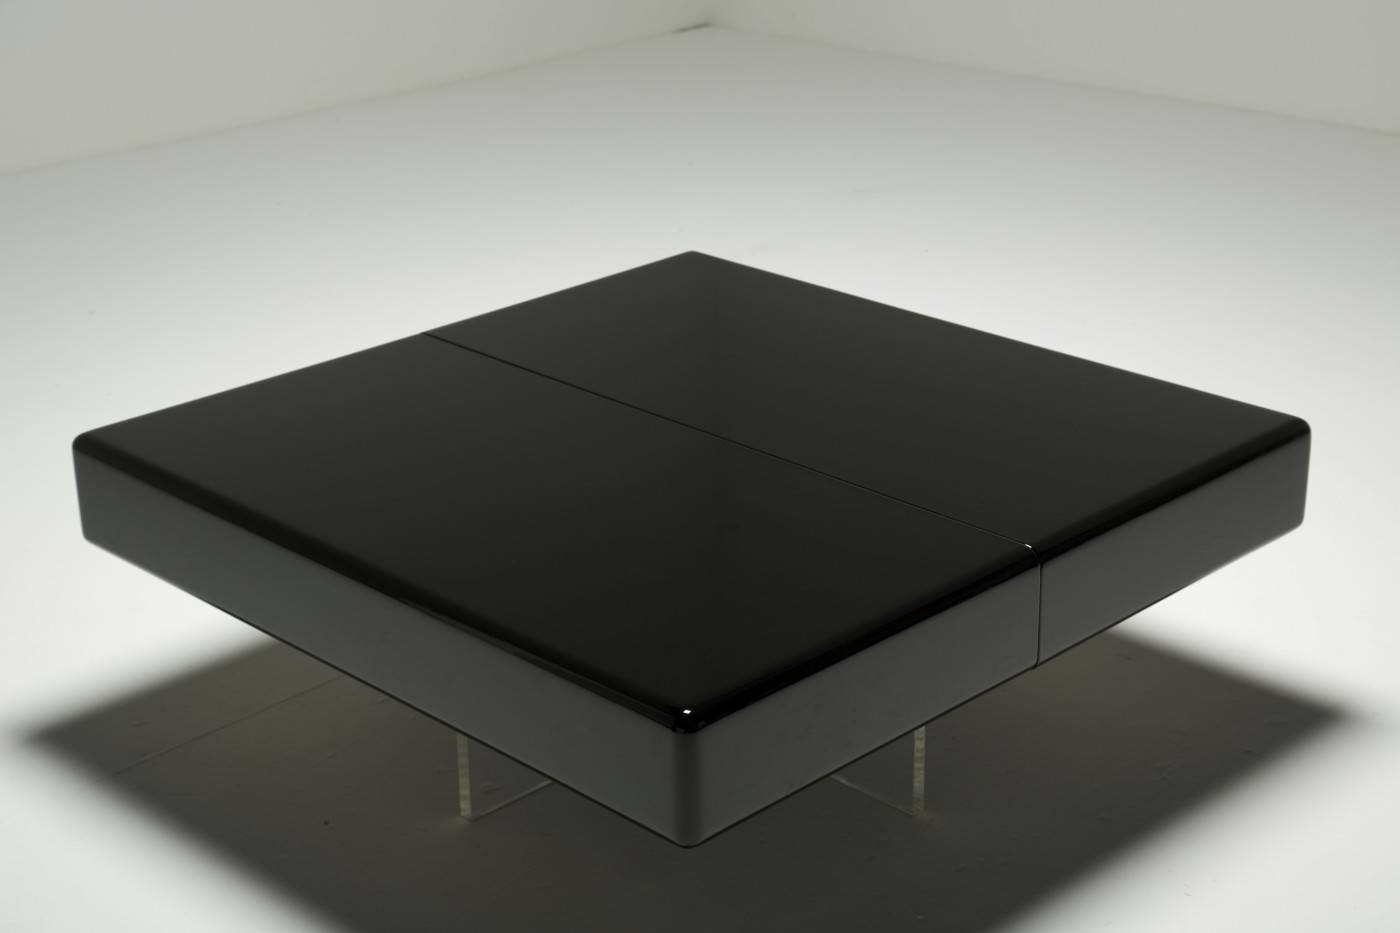 Black Lacquer Coffee Table With Perspex Base For Sale At Pamono inside Lacquer Coffee Tables (Image 5 of 30)